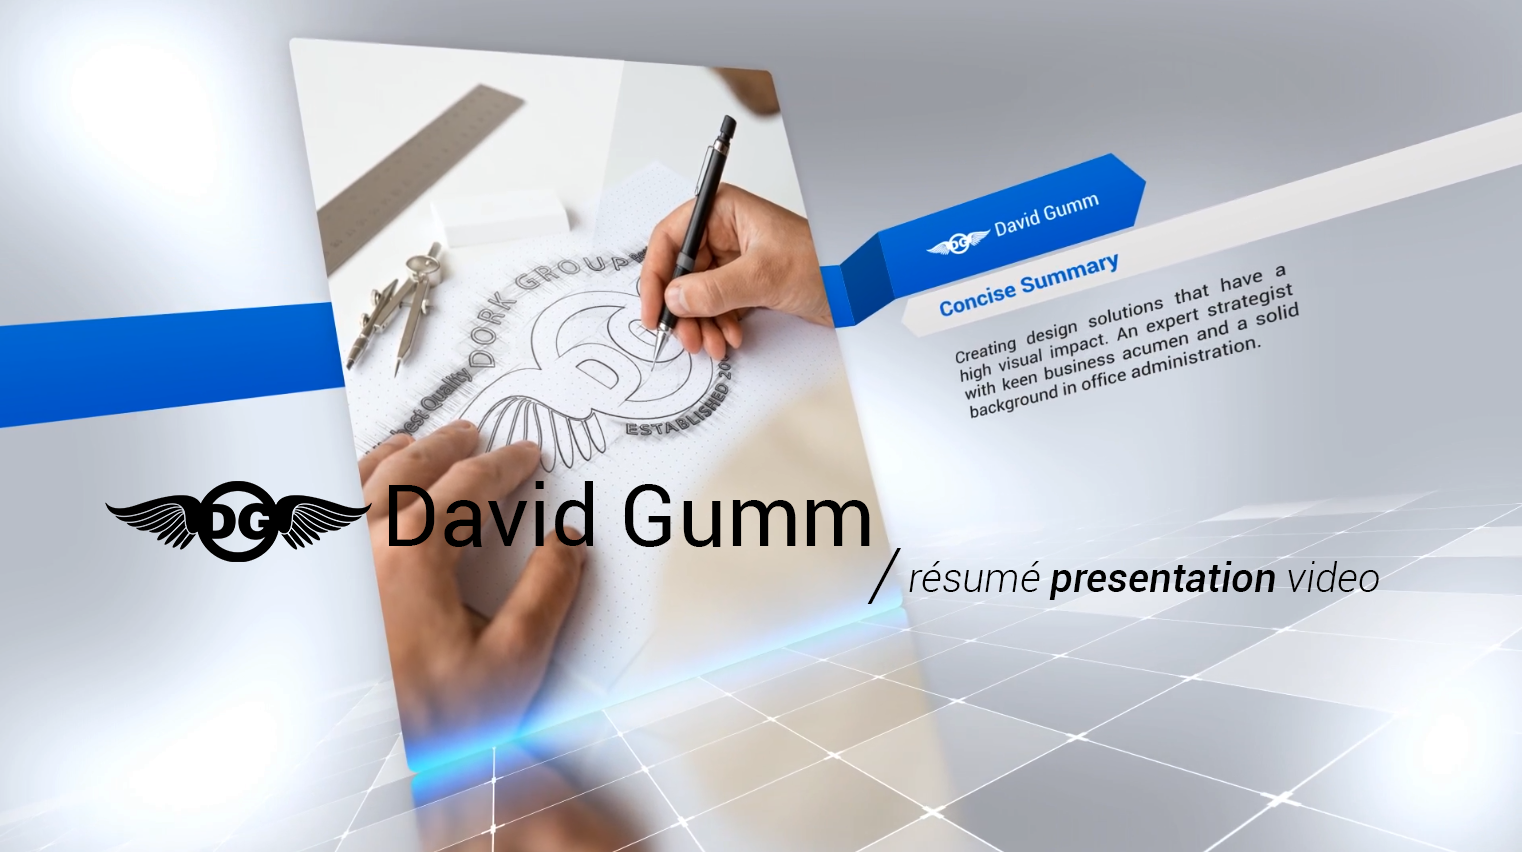 The Dork Group: David Gumm\'s Résumé Presentation Video